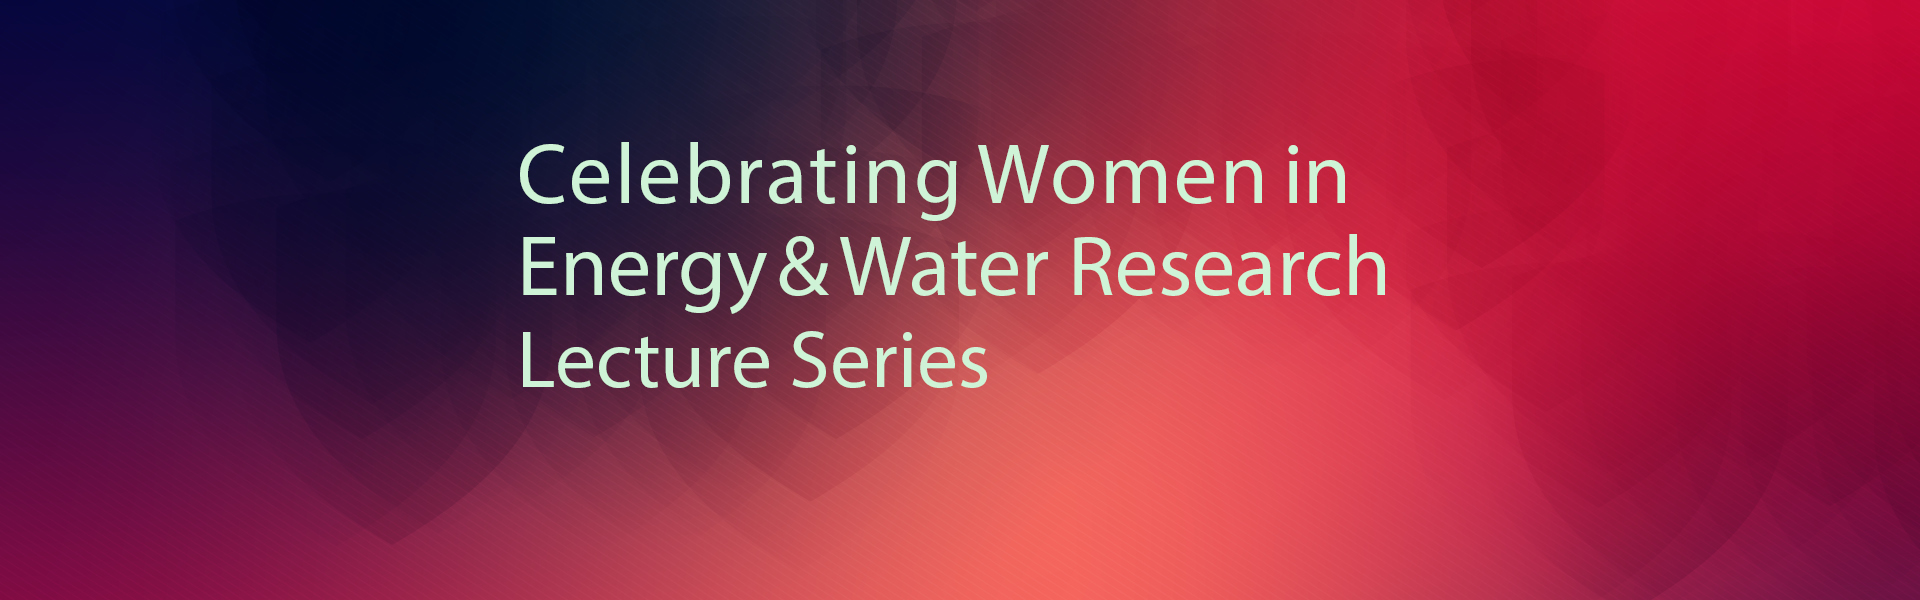 Celebrating Women in Energy and Water Research